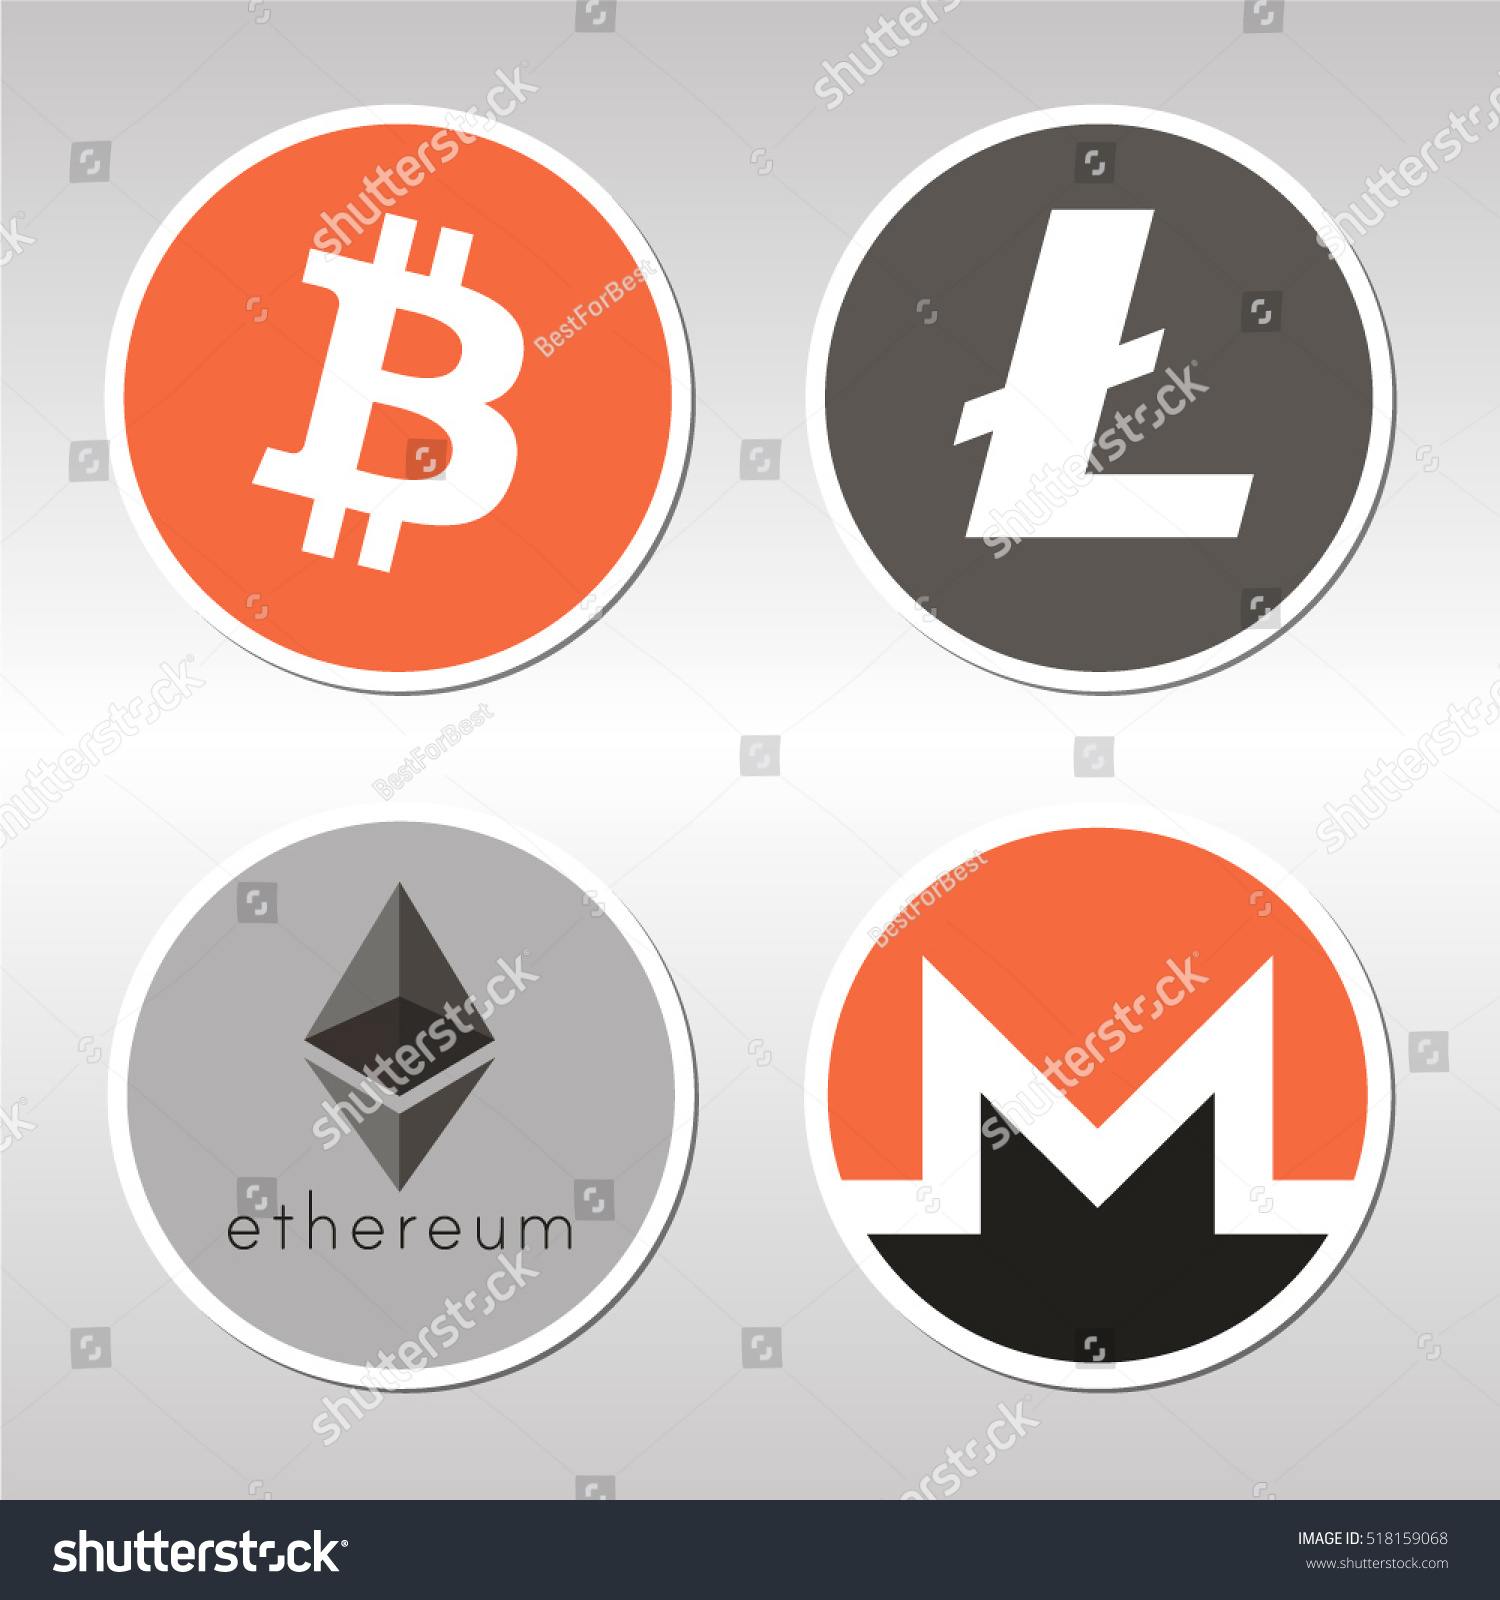 Litecoins Vs Bitcoin Ticker Symbol For Cryptocurrency